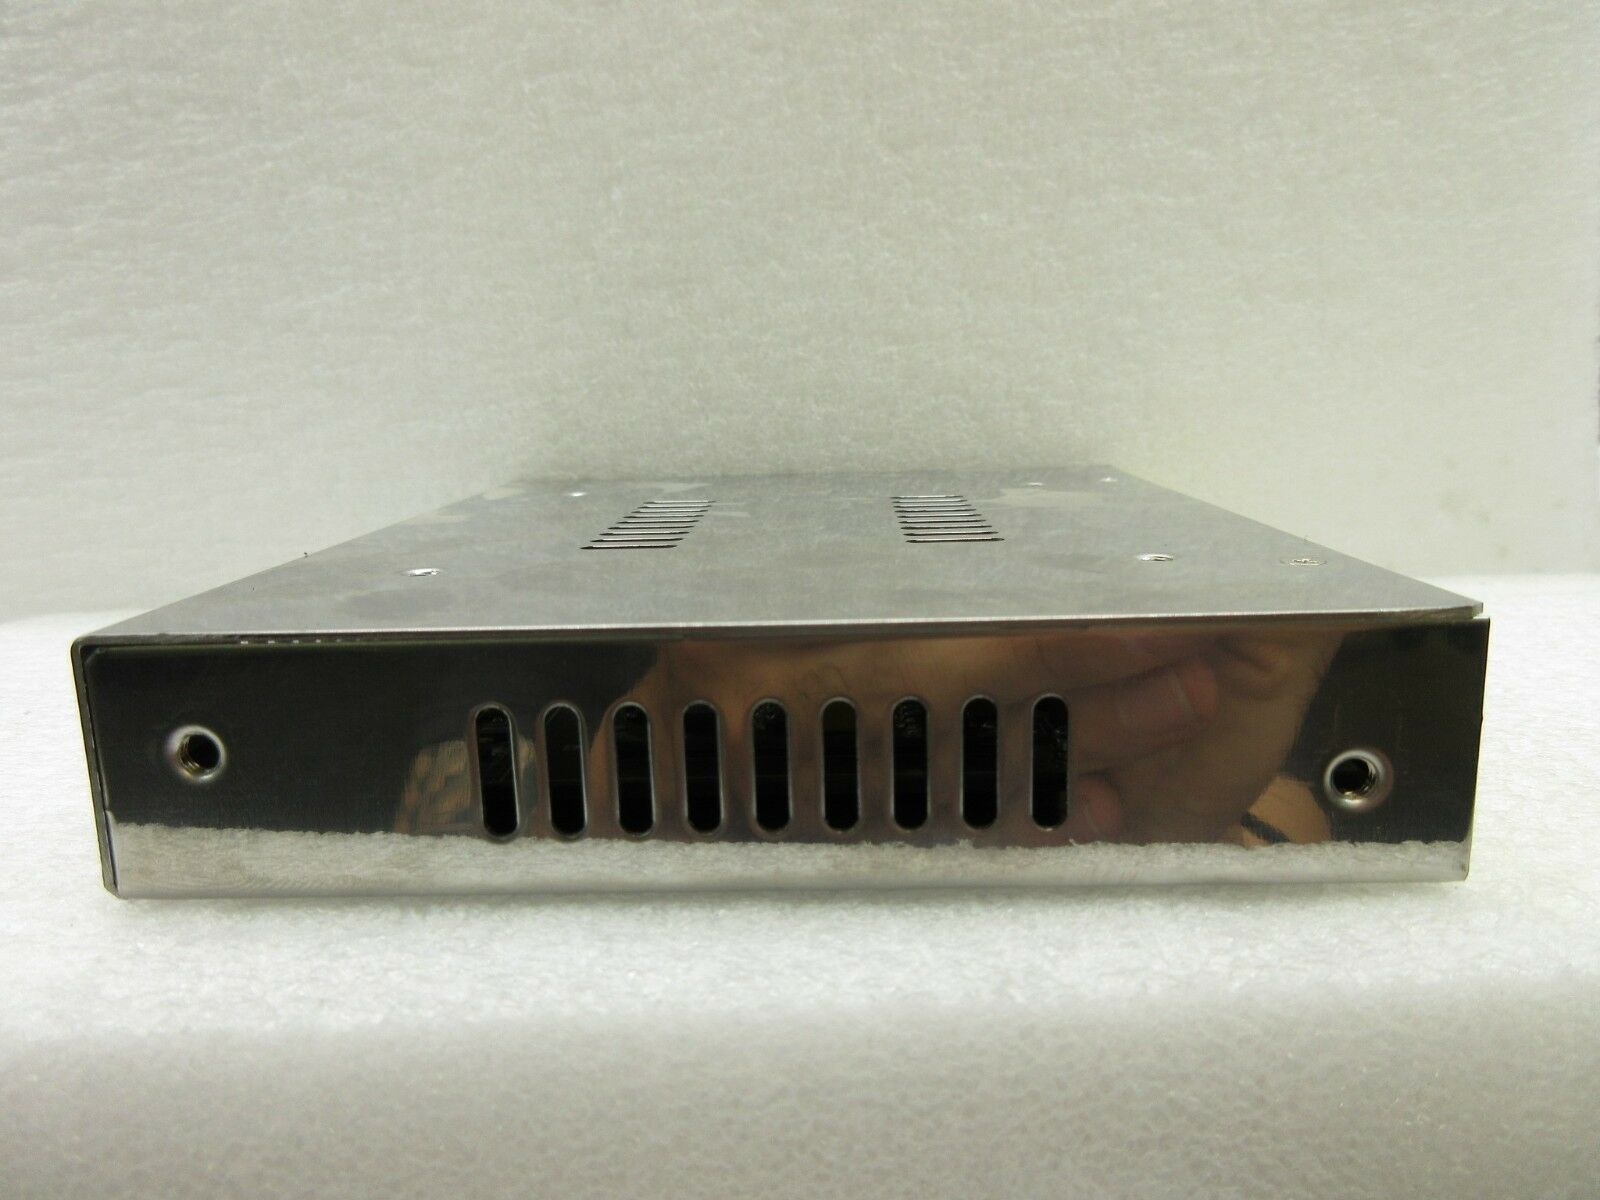 Nikon 4S587-579A 5-Port Network HUB RS-HUB NSR-S306C System Used Working